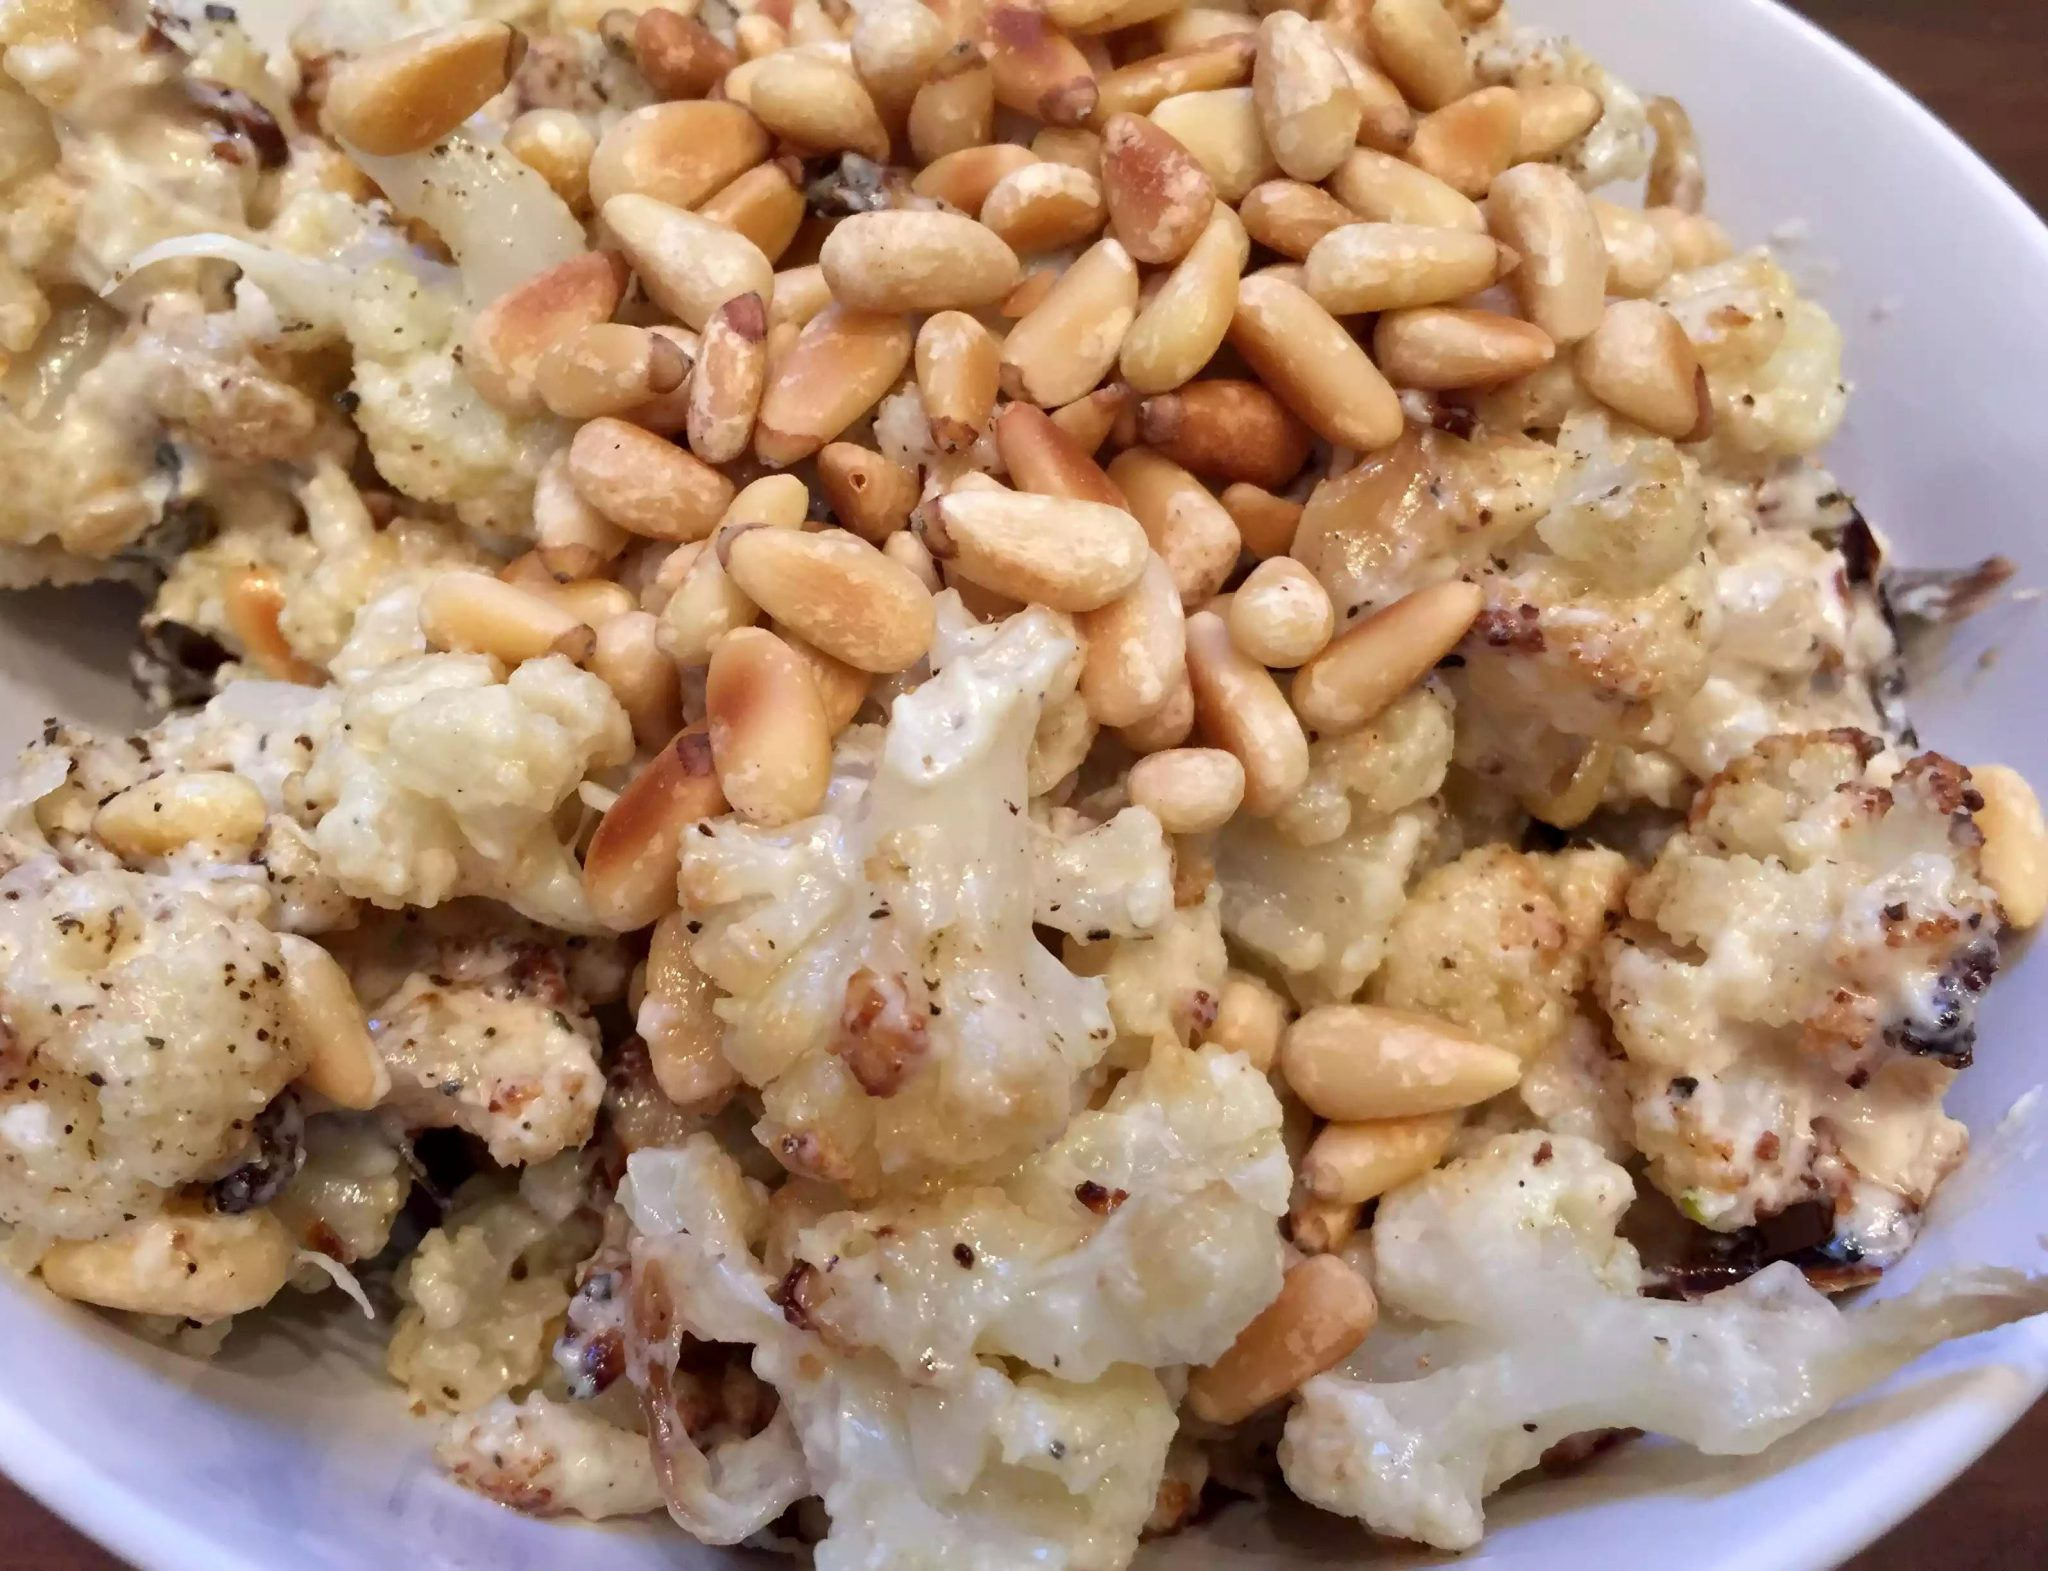 Roasted Cauliflower Tahini Yoghurt Lemon Dressing Garlic Pine Nuts Salad SCD Paleo Gluten Free Grain